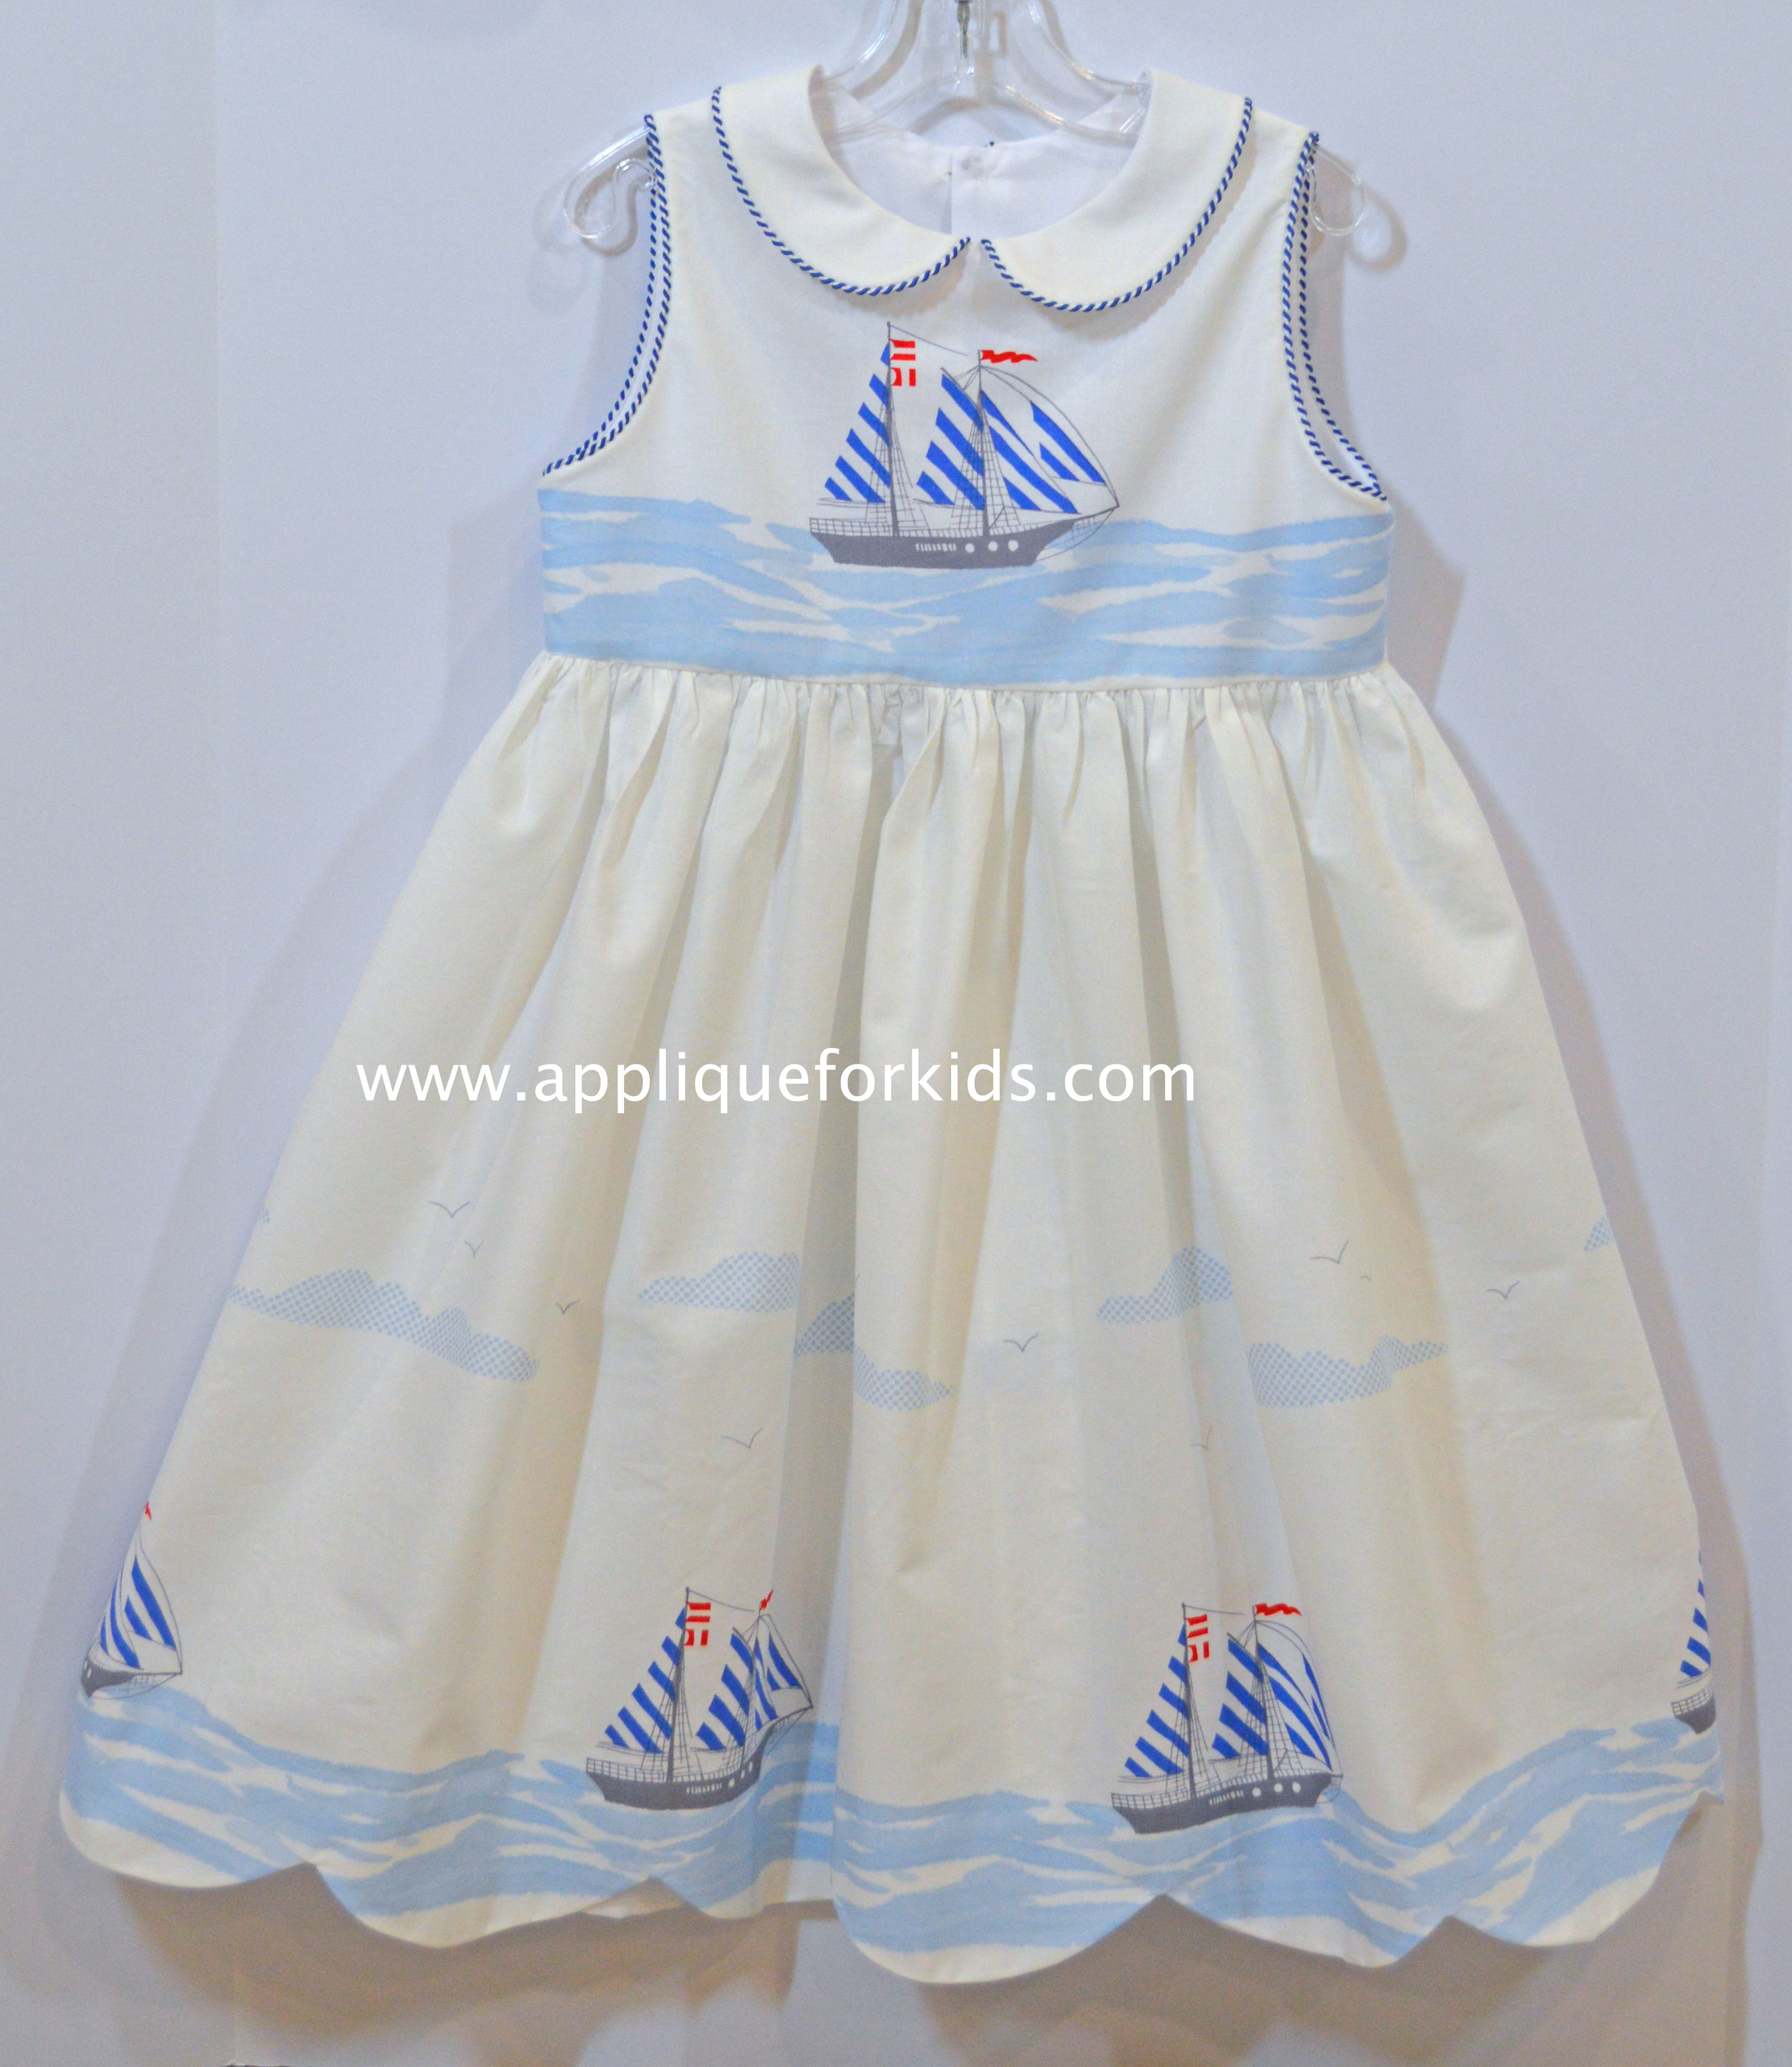 Fun Summer Dress Fabric Is By Michale Miller I Scalloped The Hemline To Look Like Waves Childrens Clothes Best Summer Dresses Girl Outfits [ 3862 x 3348 Pixel ]